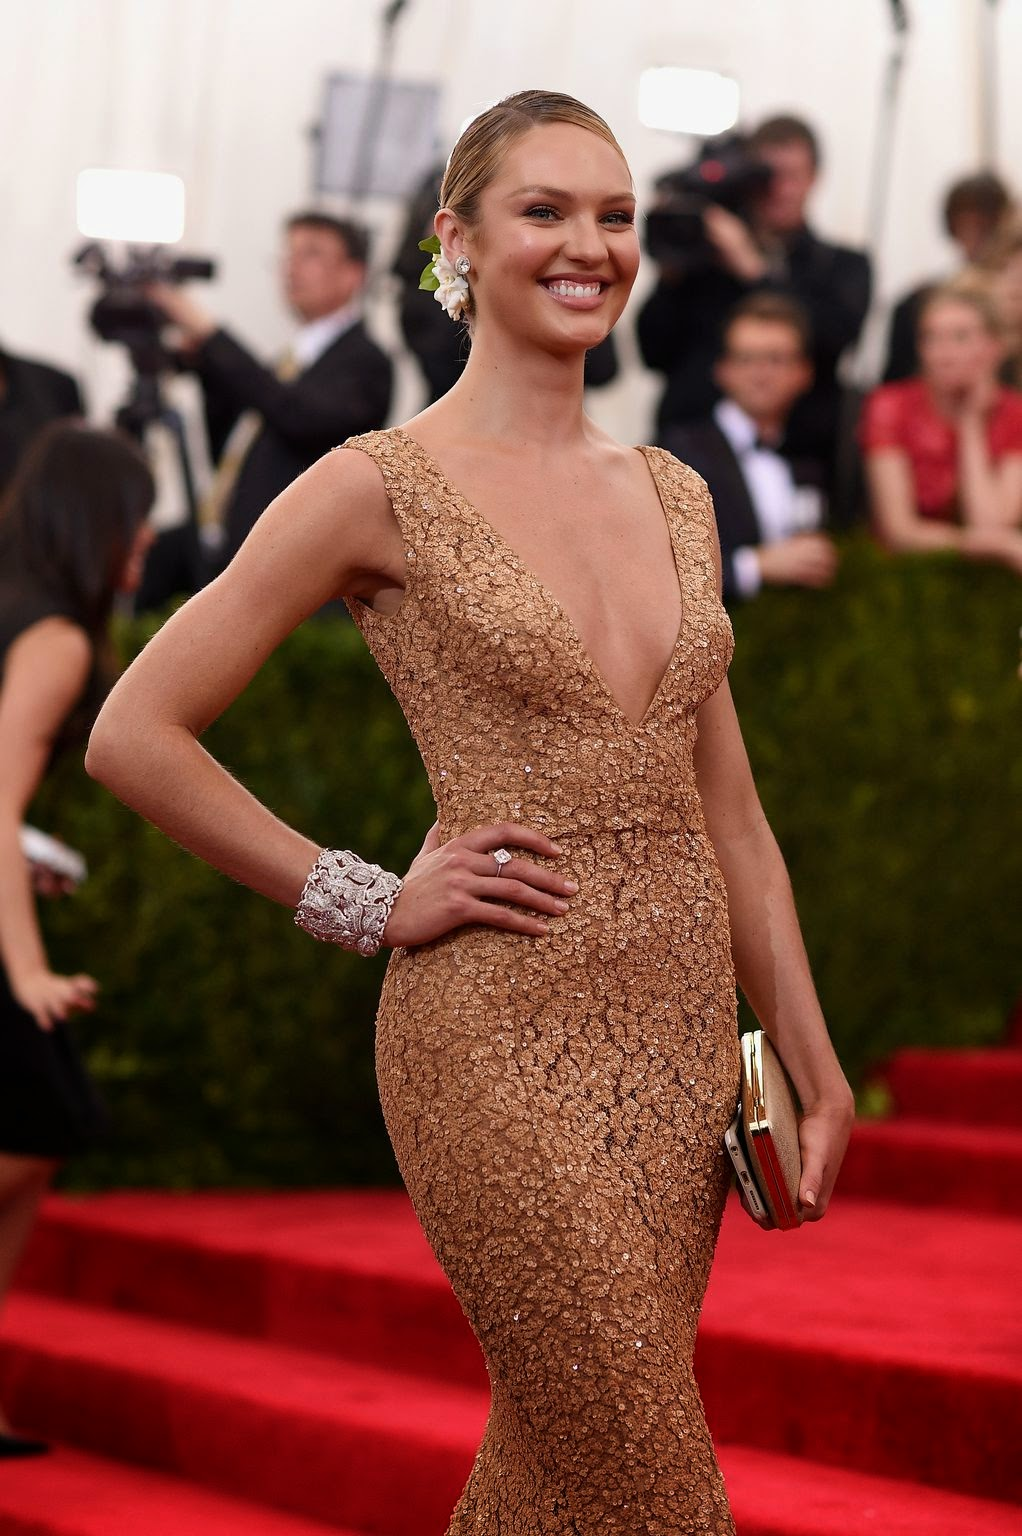 Candice Swanepoel is gorgeous in a plunging lace gown at the 2015 Met Gala